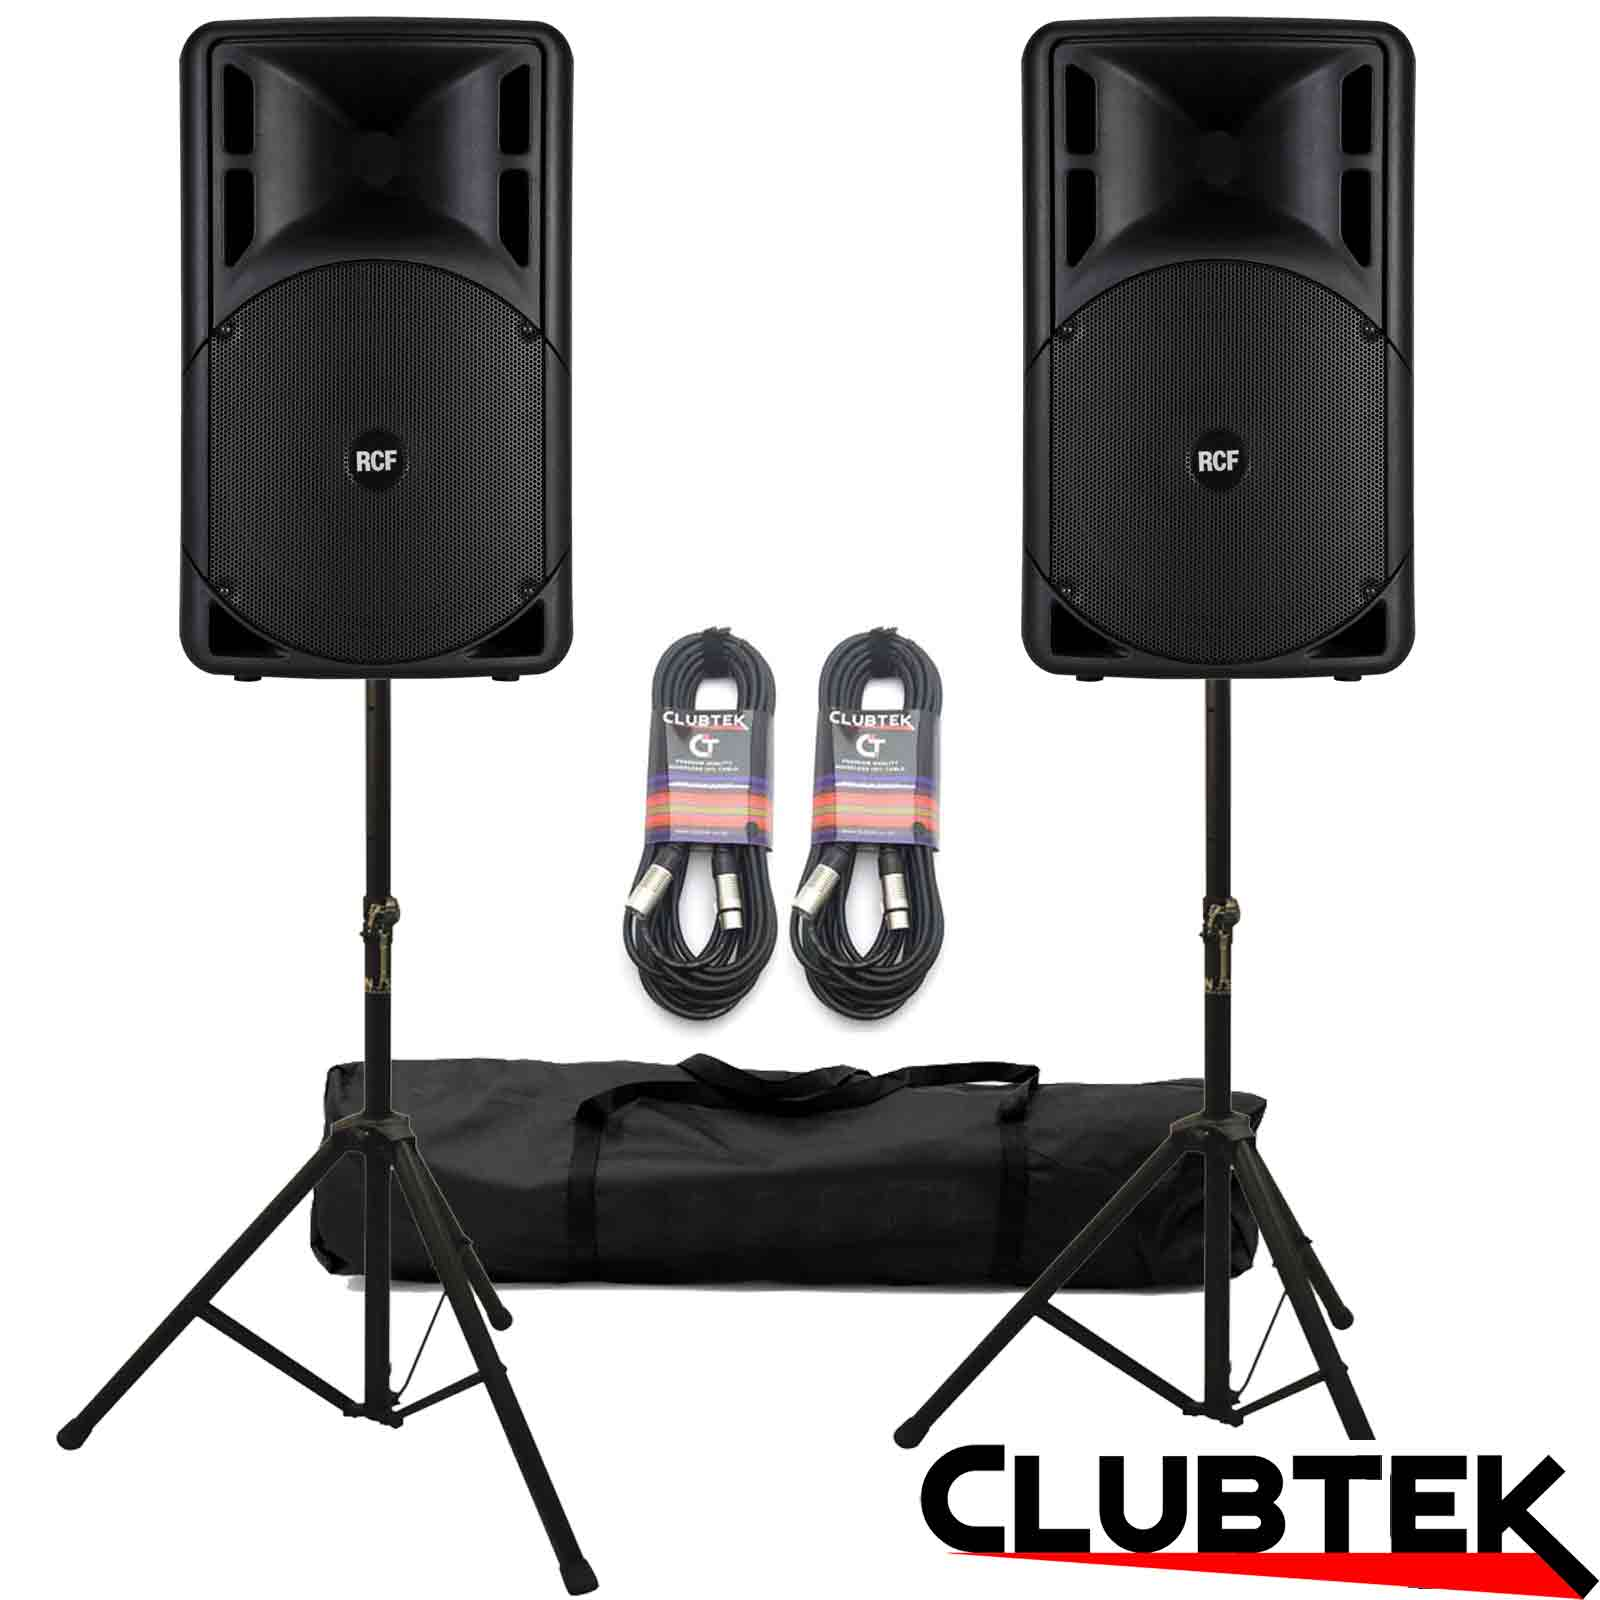 PAIR of RCF Art 312A MK 4 Speakers + Free Stands and Cables